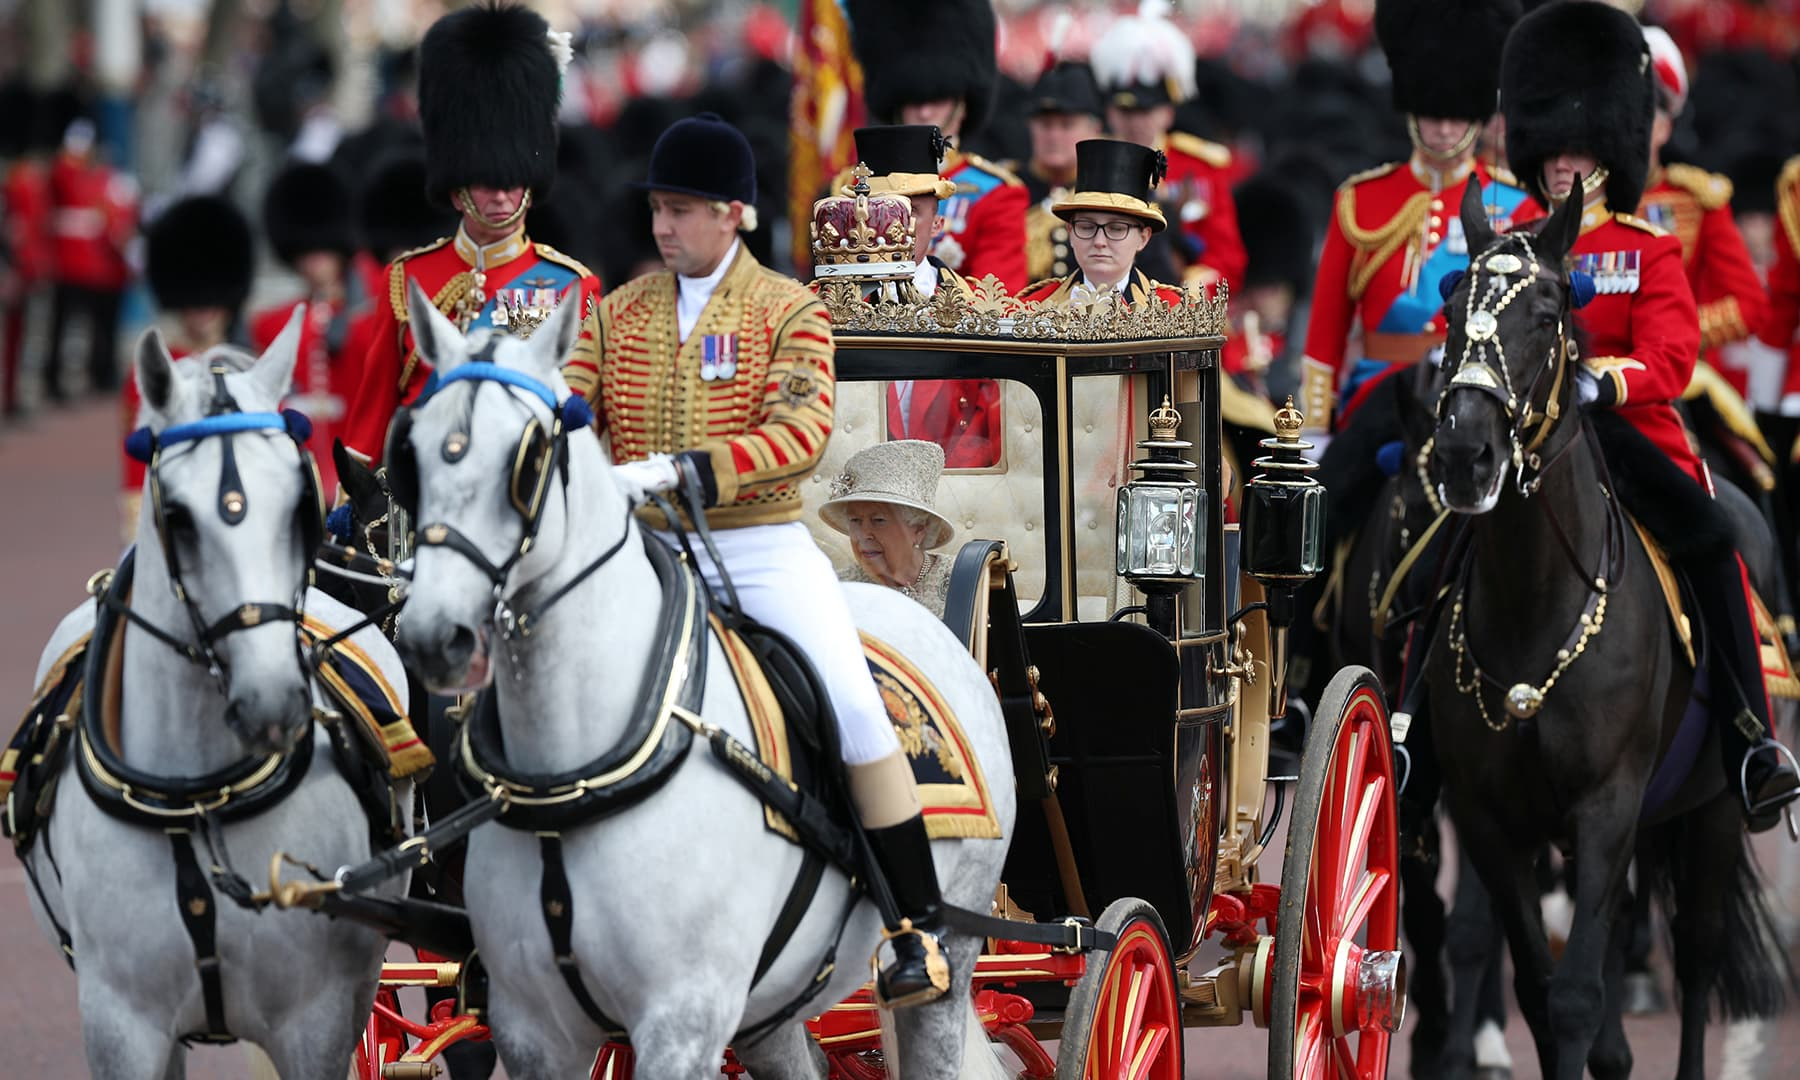 Britain's Queen Elizabeth takes part in the Trooping the Colour parade. — Reuters